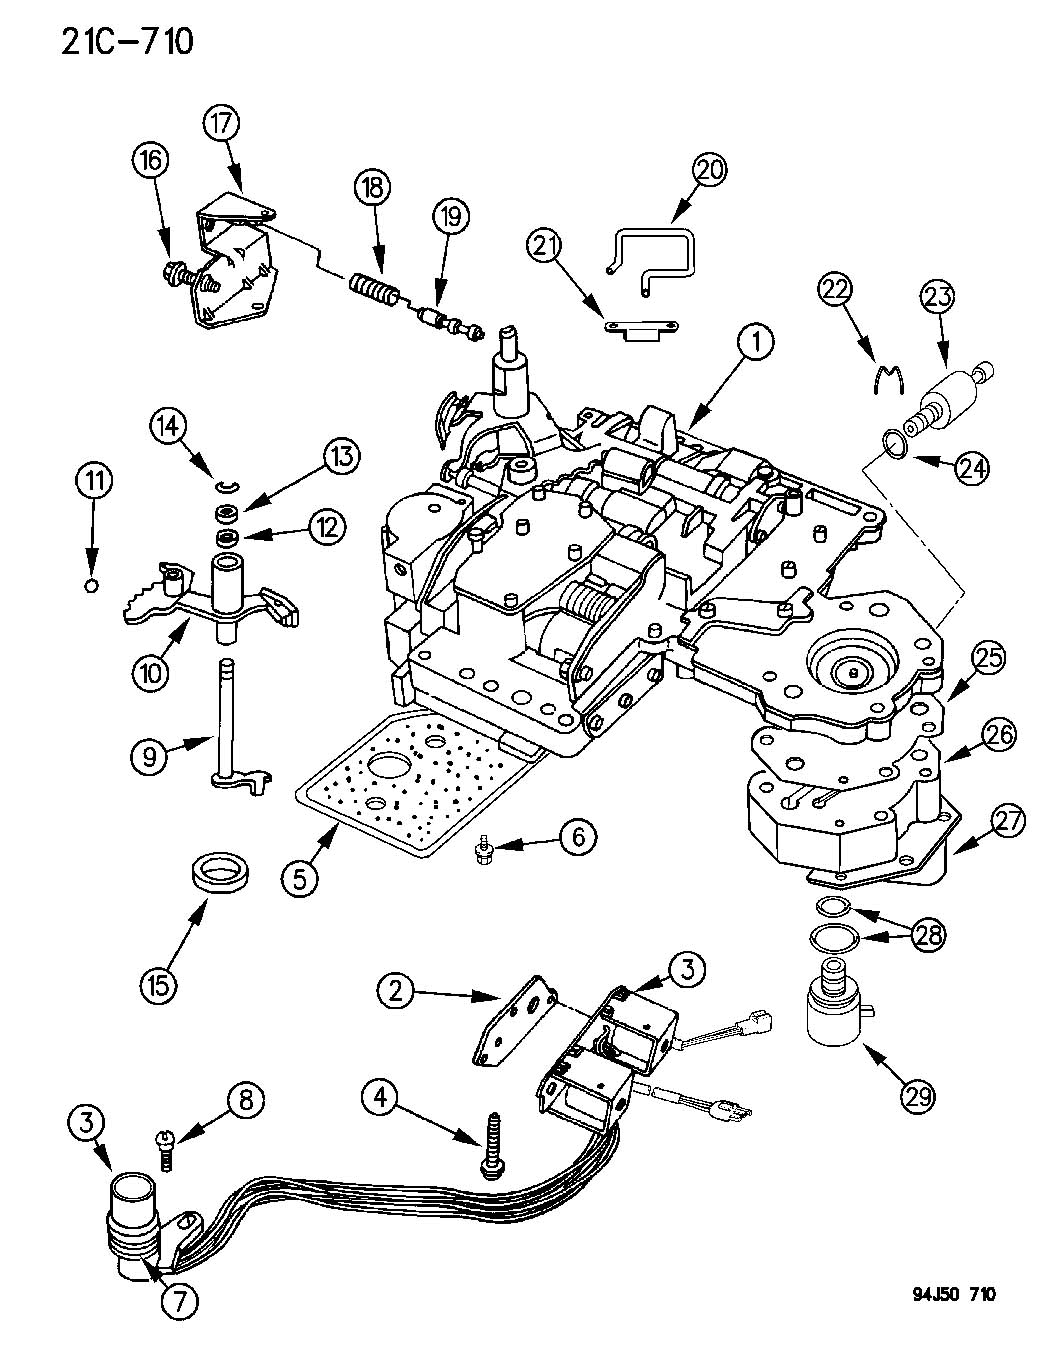 Service manual [How To Install 1994 Jeep Cherokee Valve